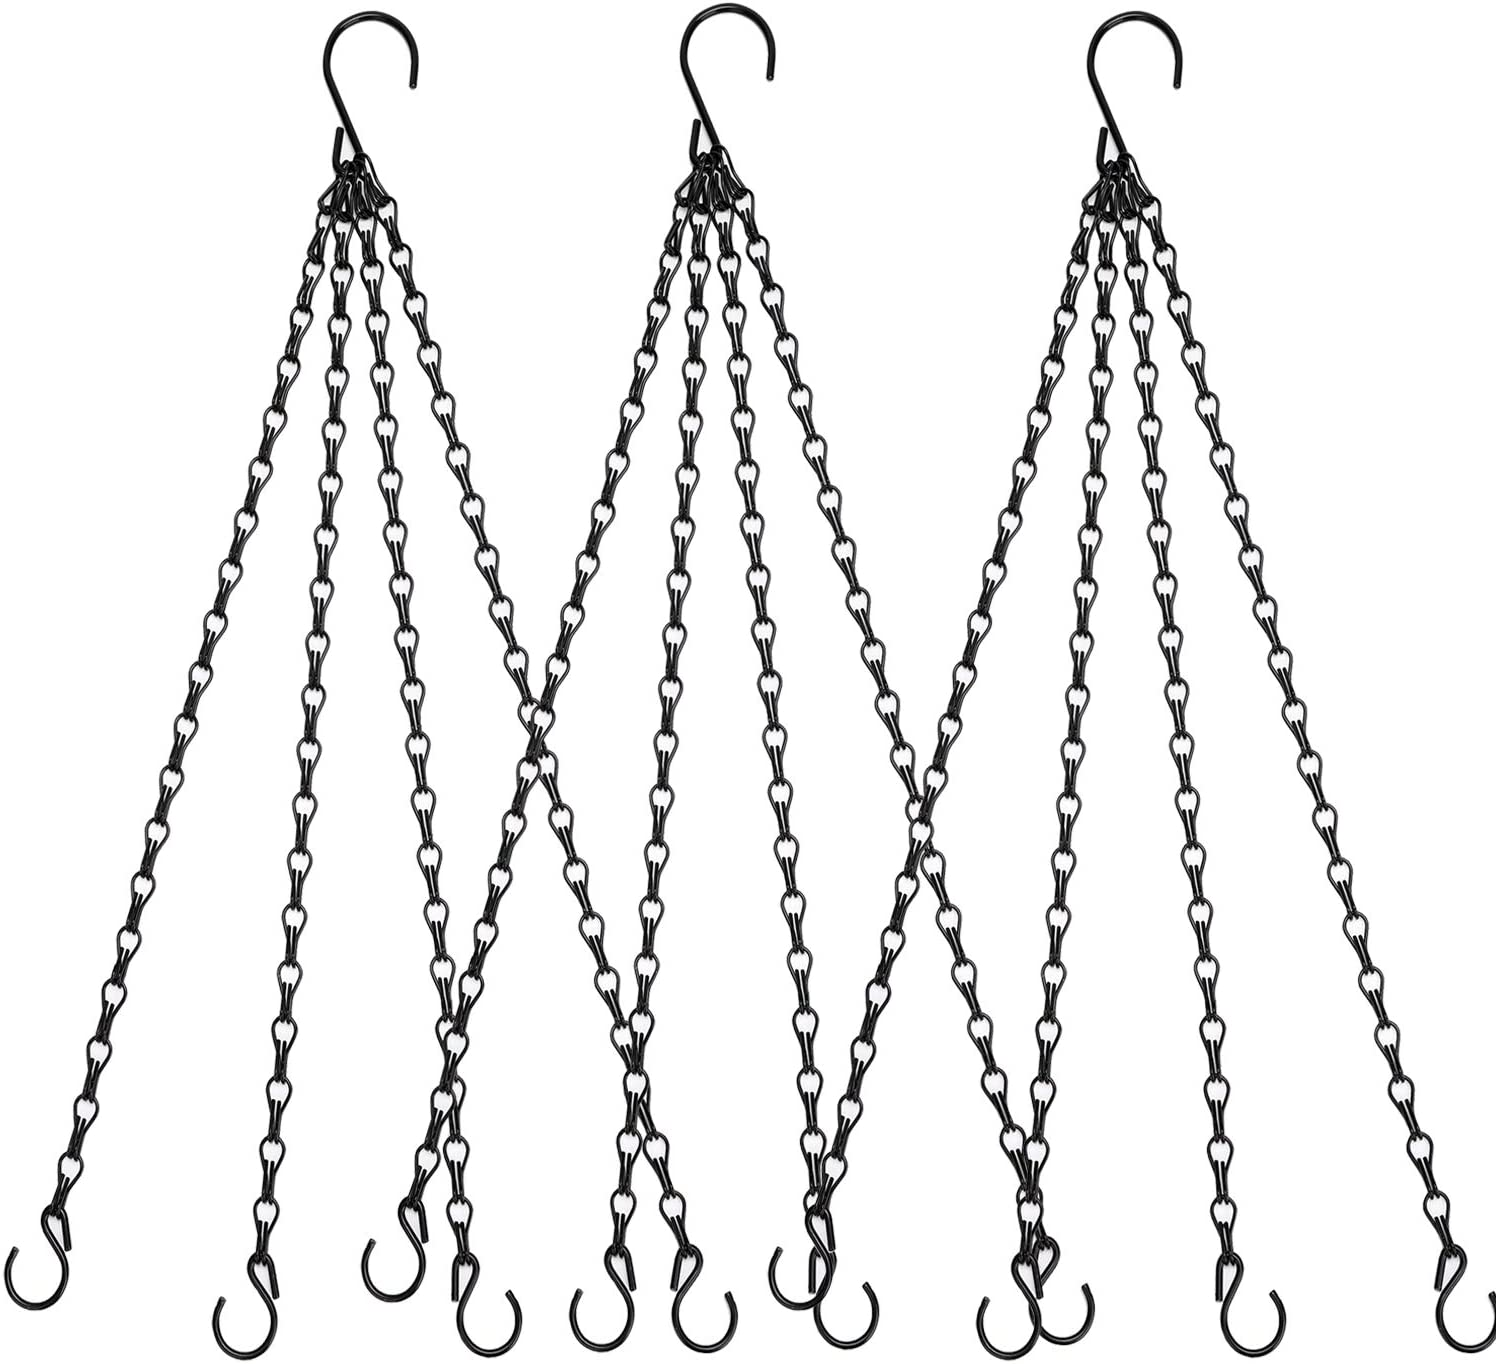 Hanging Baskets Chains 23 Inches P 2021 4 OFFicial shop Flower Leads